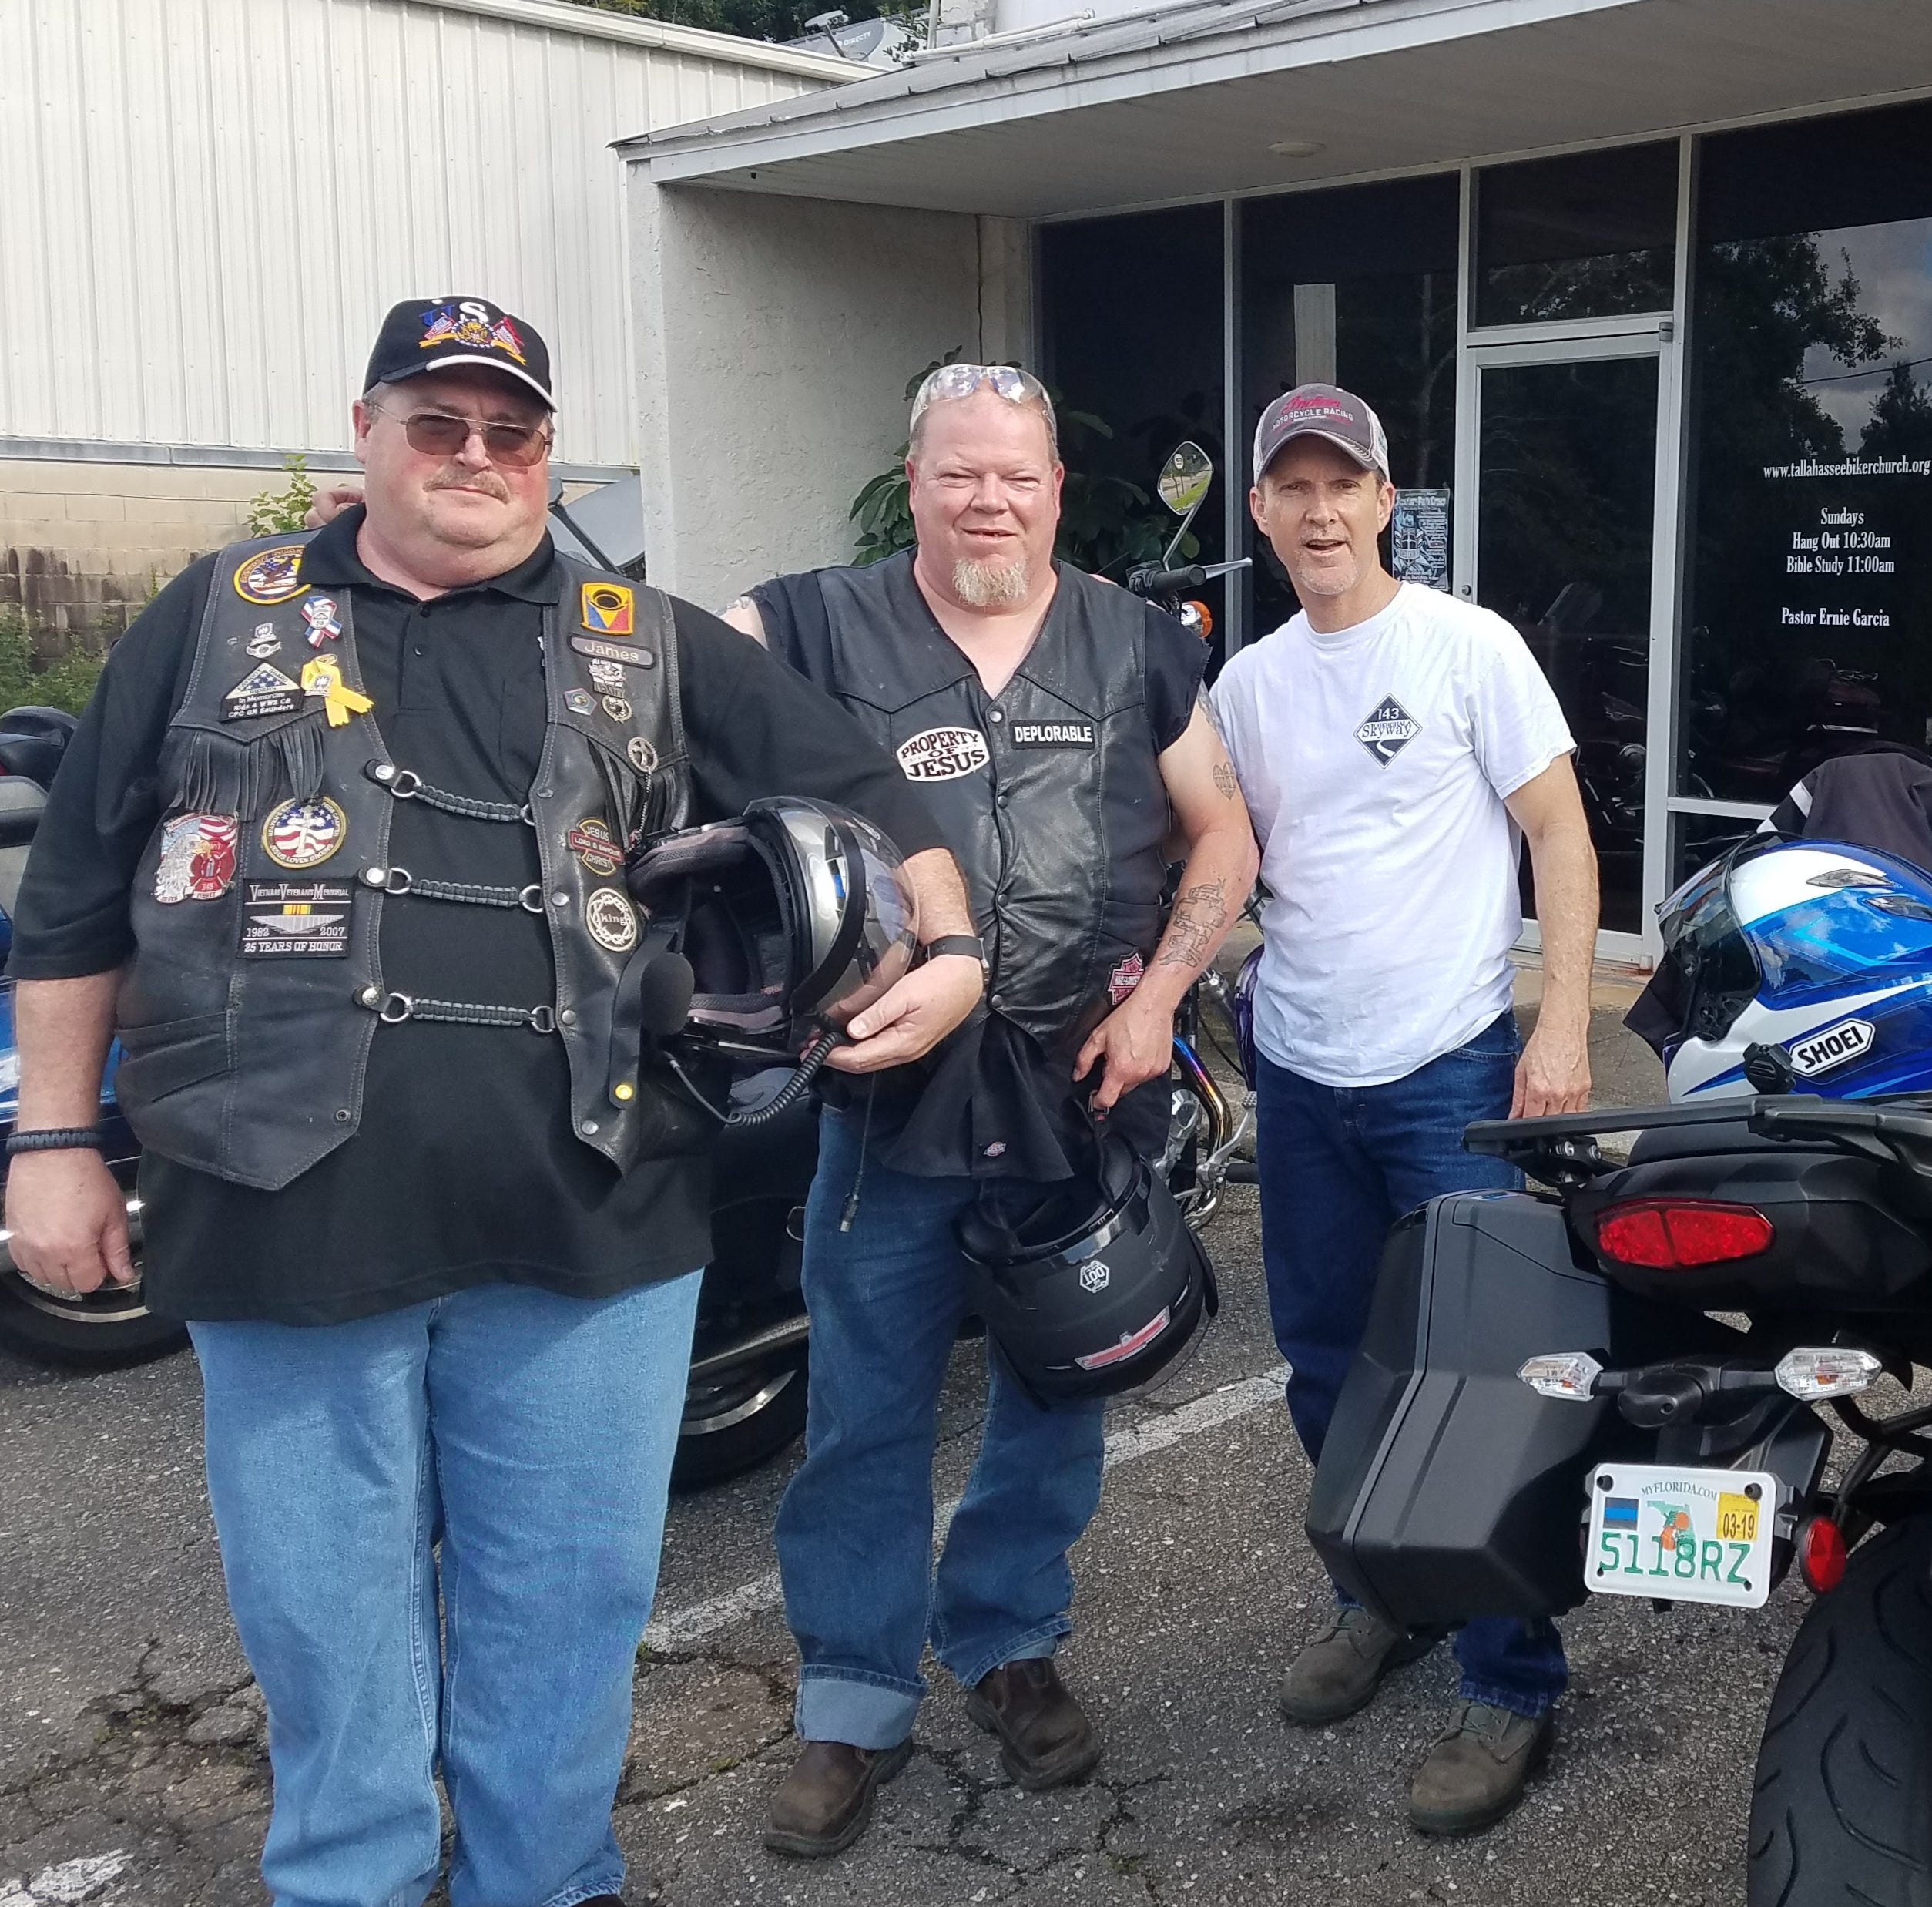 Worshippers rev up spiritual engines at Tallahassee Biker Church